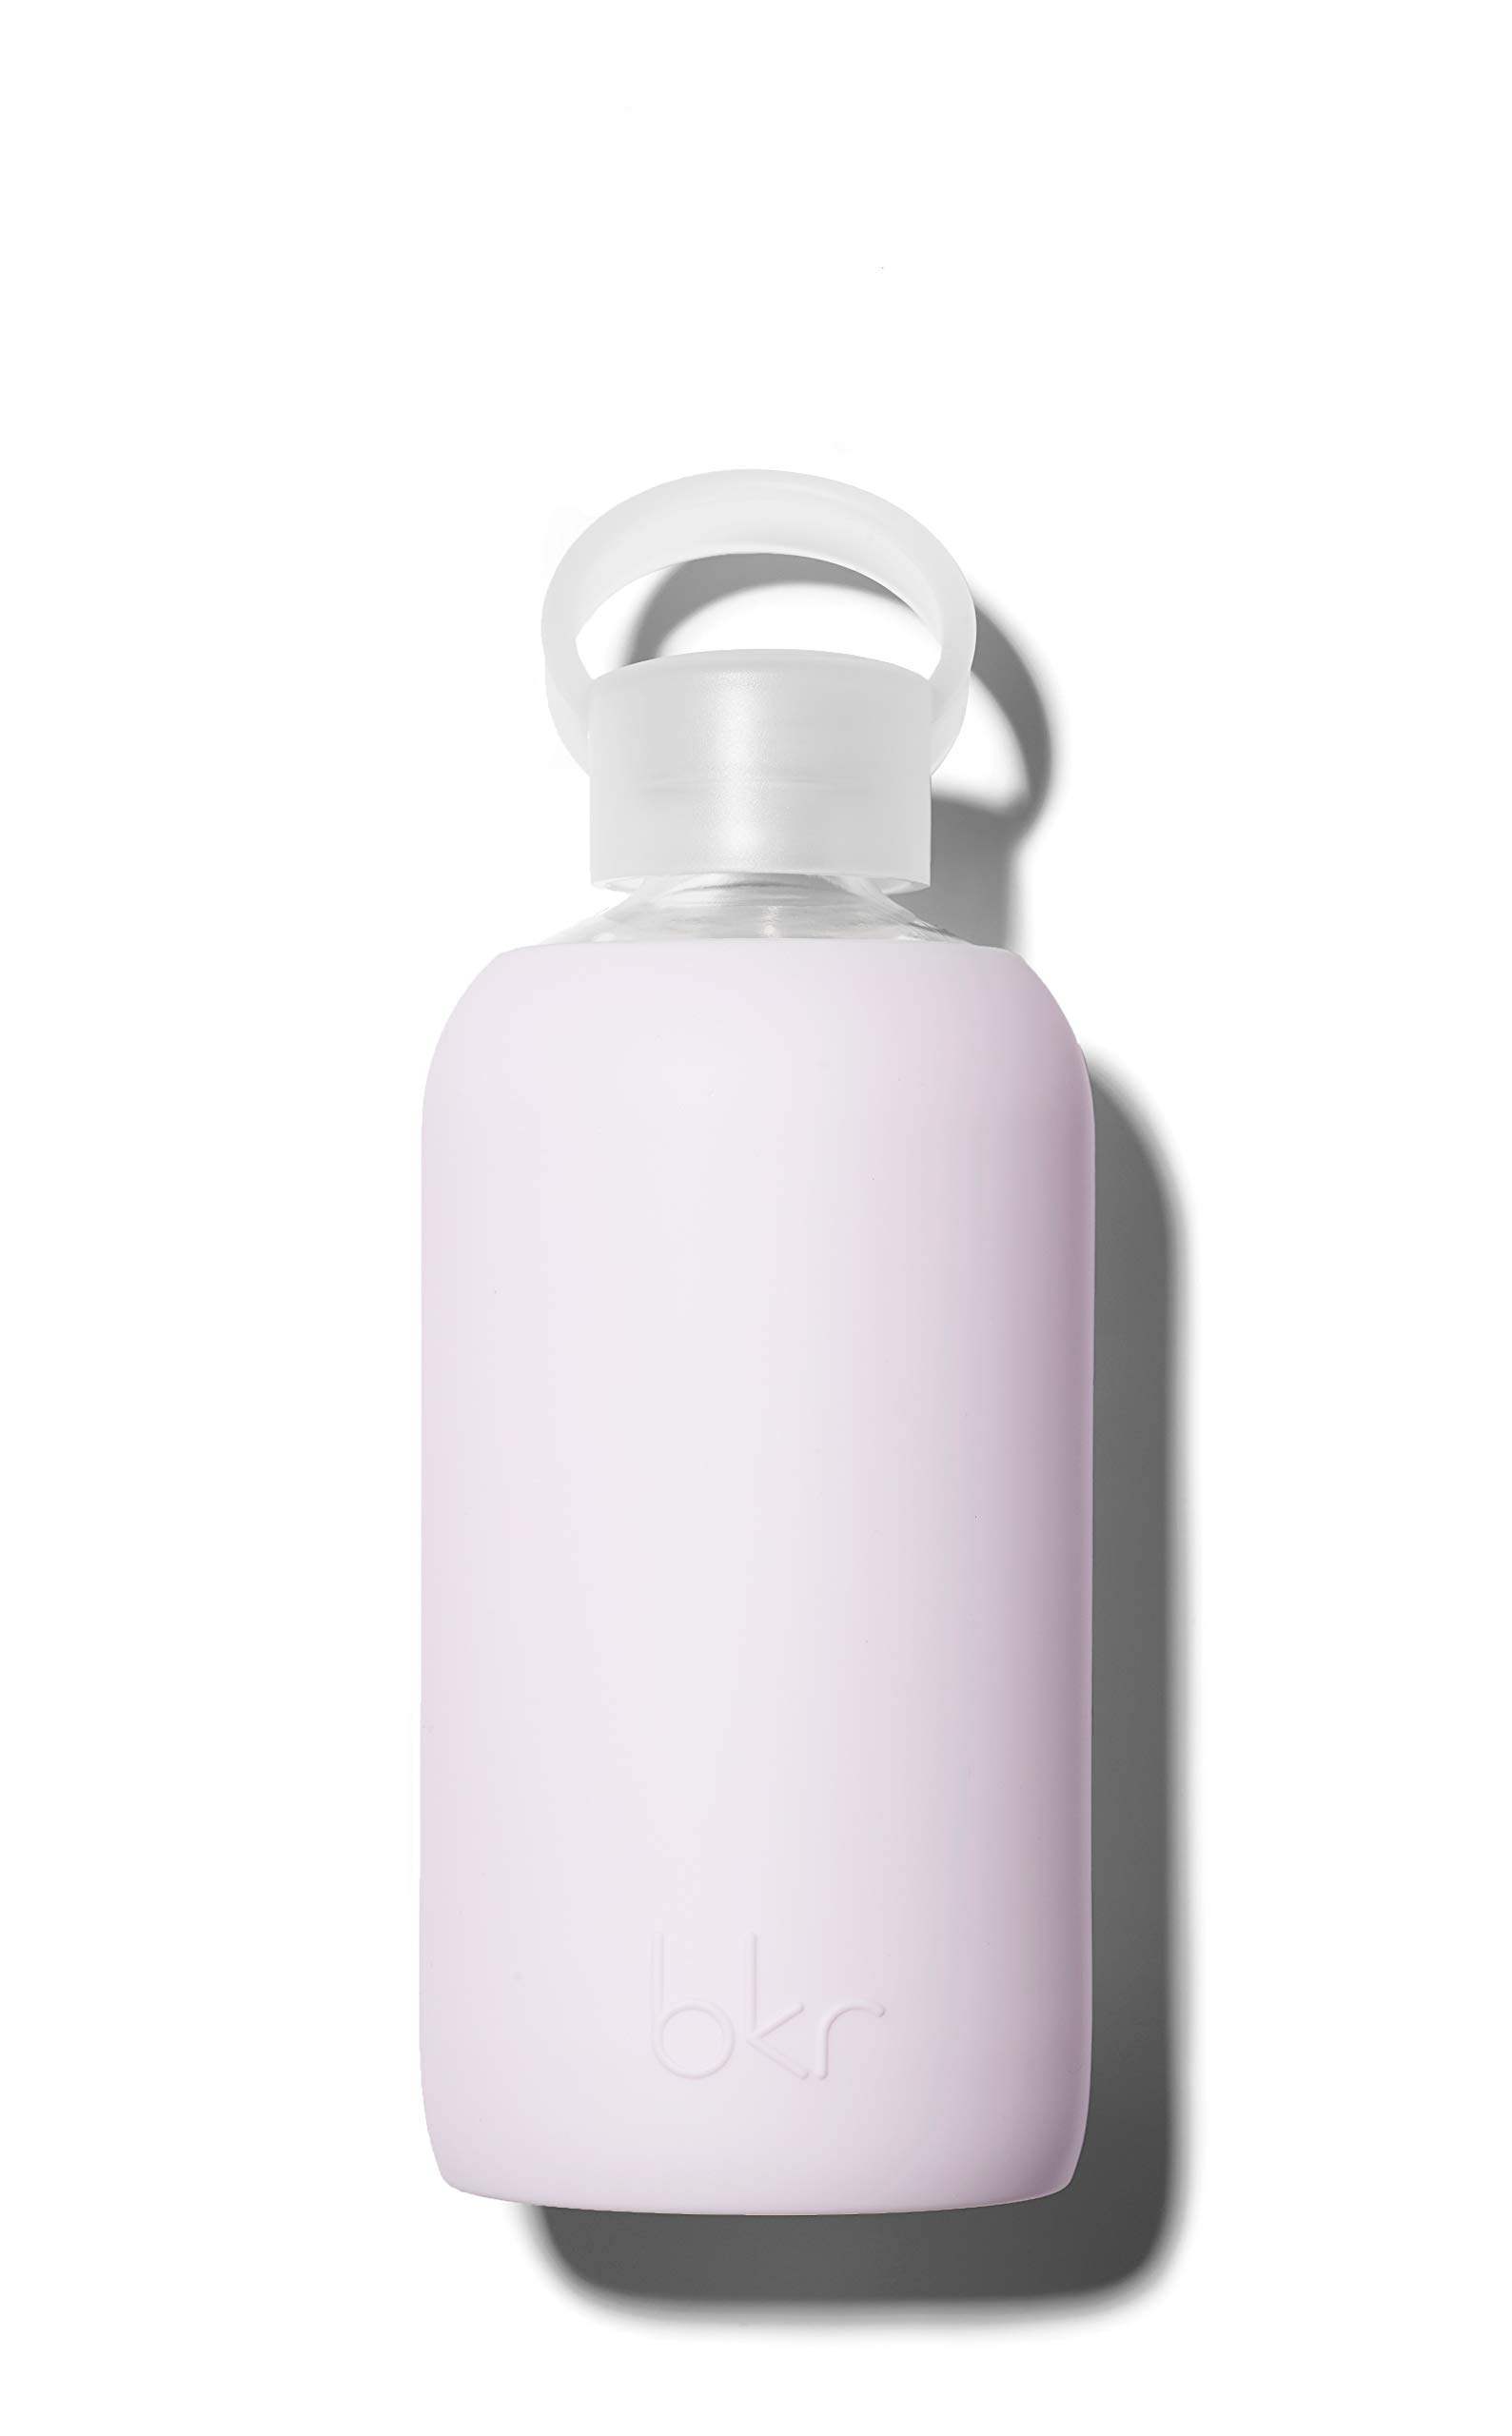 bkr Lala Glass Water Bottle with Smooth Silicone Sleeve for Travel, Narrow Mouth, BPA-Free & Dishwasher Safe, Opaque Lavender Fog, 16 oz / 500 mL